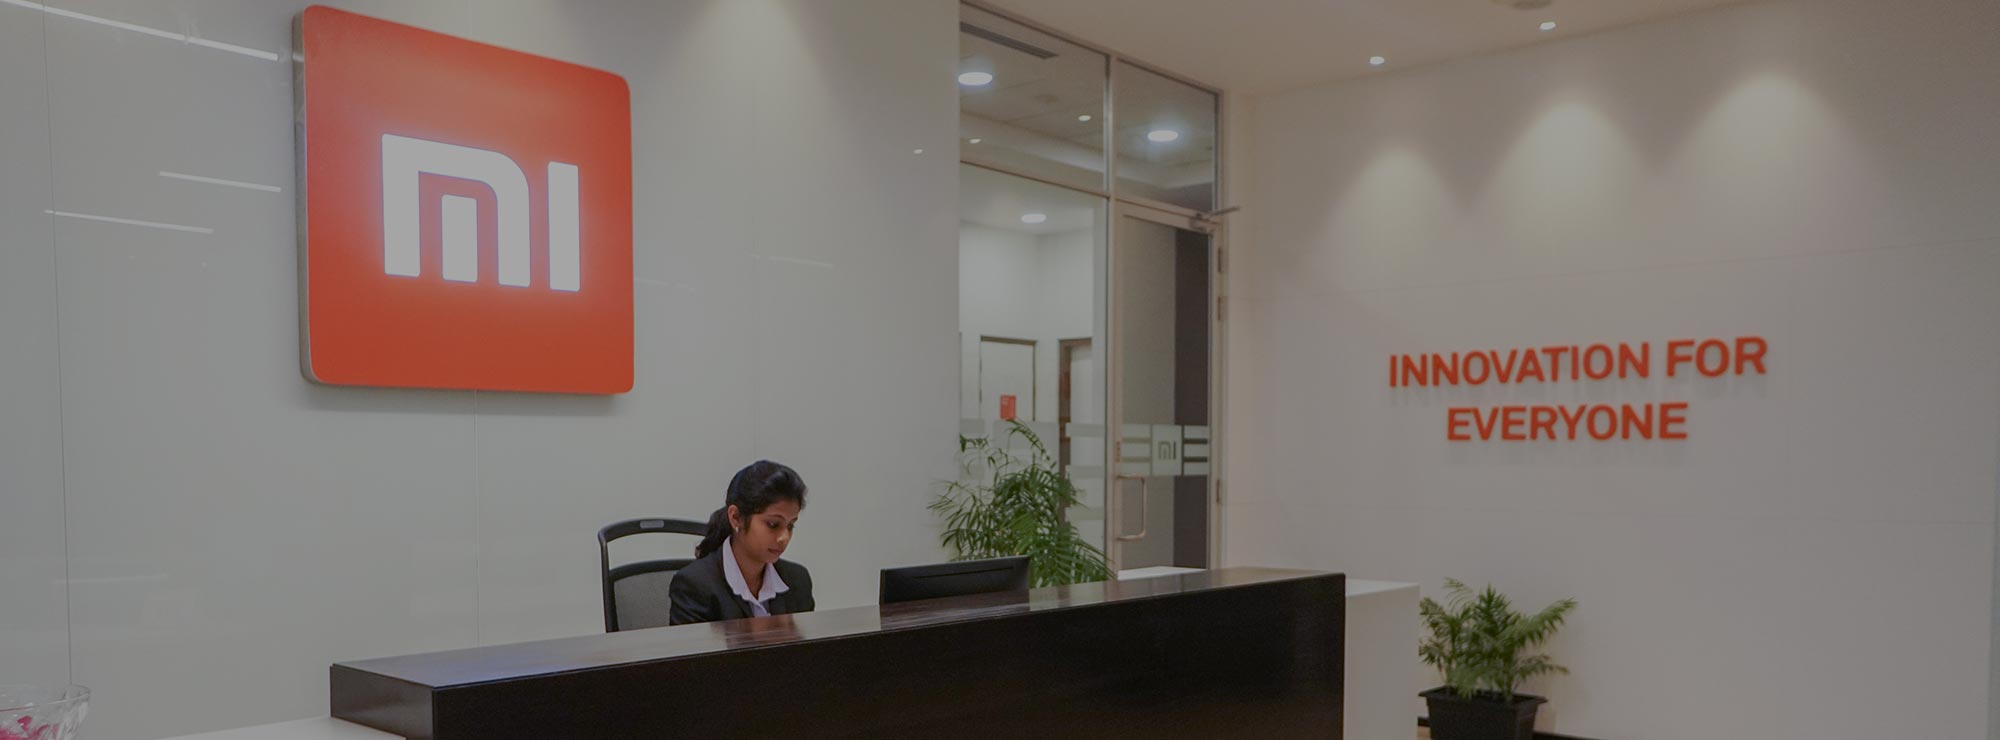 Xiaomi - Manager - Delivery Management - Purchasing